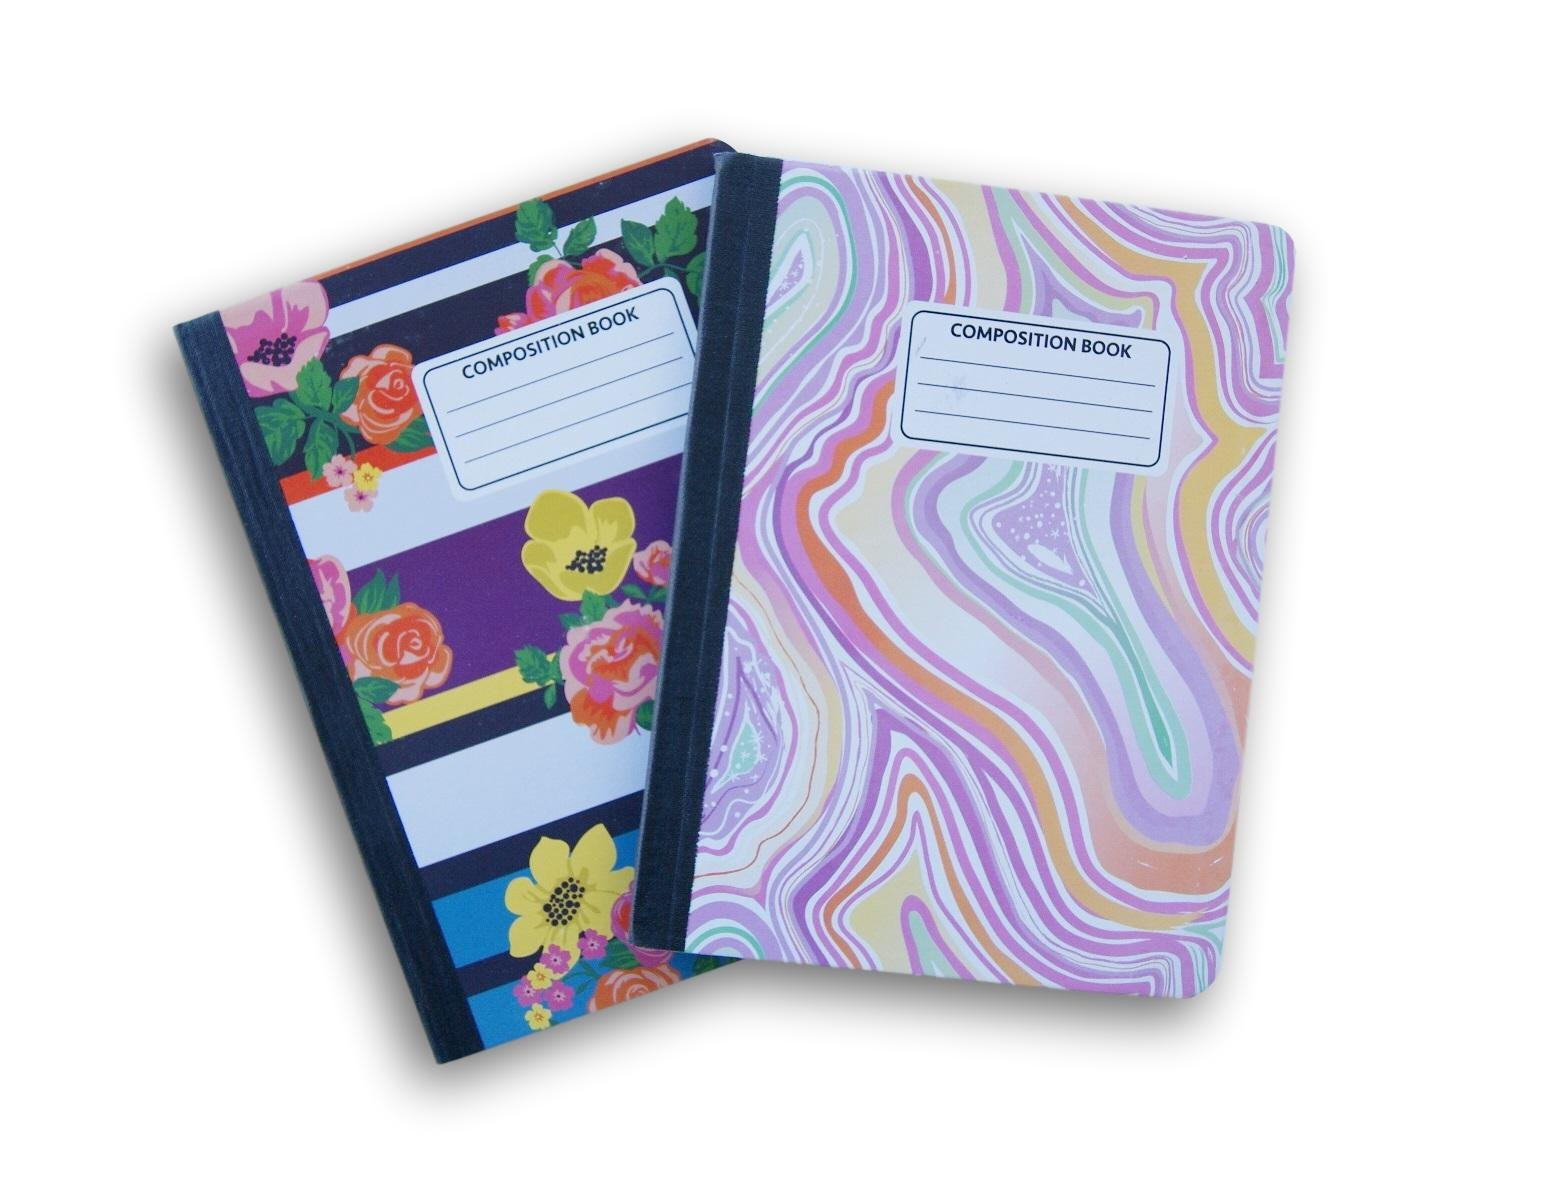 Floral and Swirl Patterned Wide Ruled 100 Sheets Composition Notebooks - (Pack of 2)